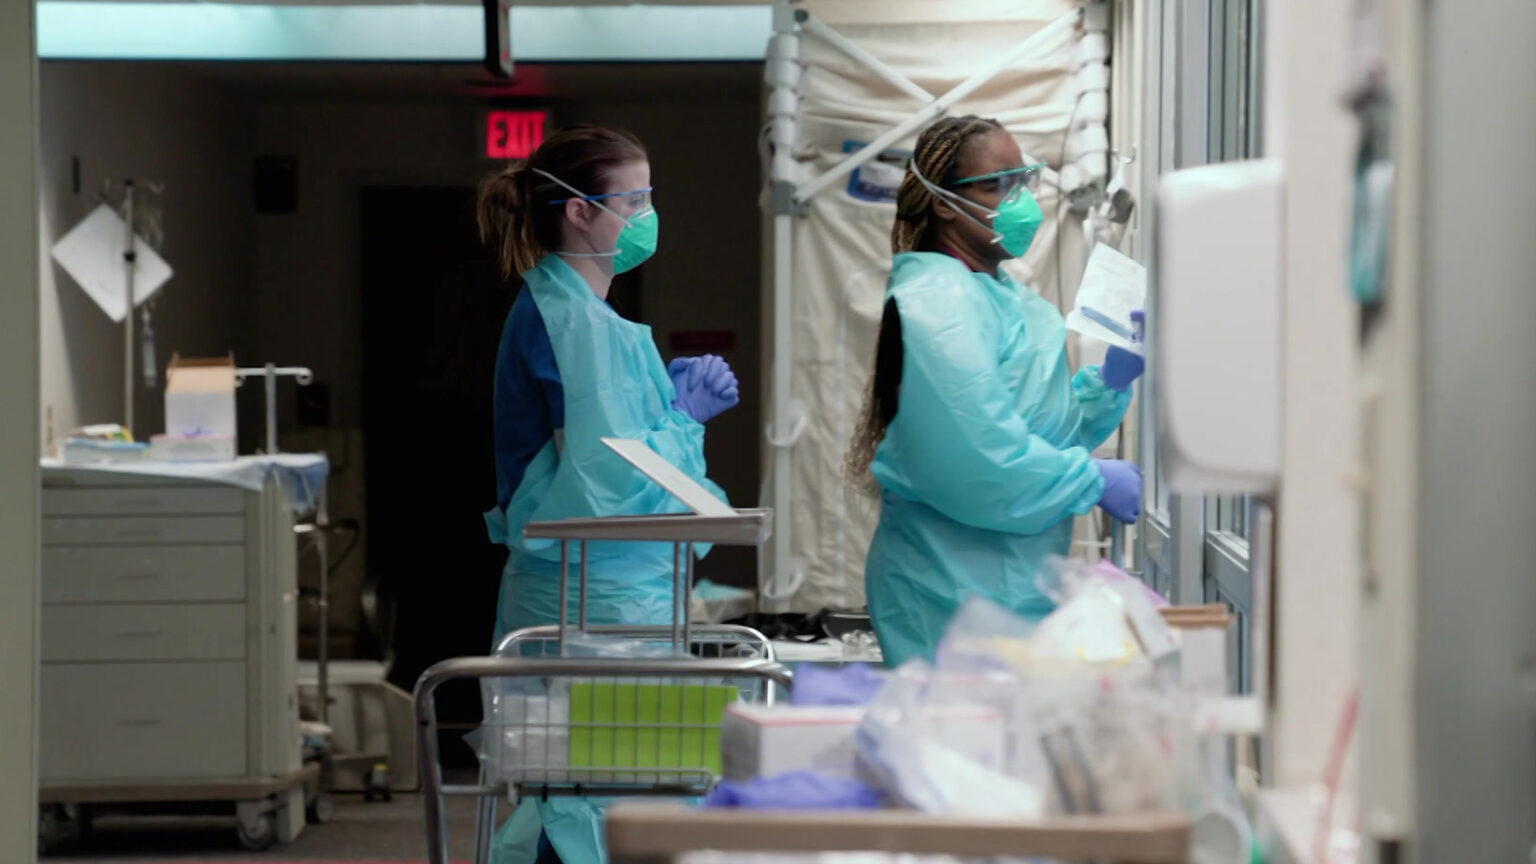 Two people wear medical gowns, gloves, masks and goggles as they prepare to enter a room inside a hallway filled with medical equipment